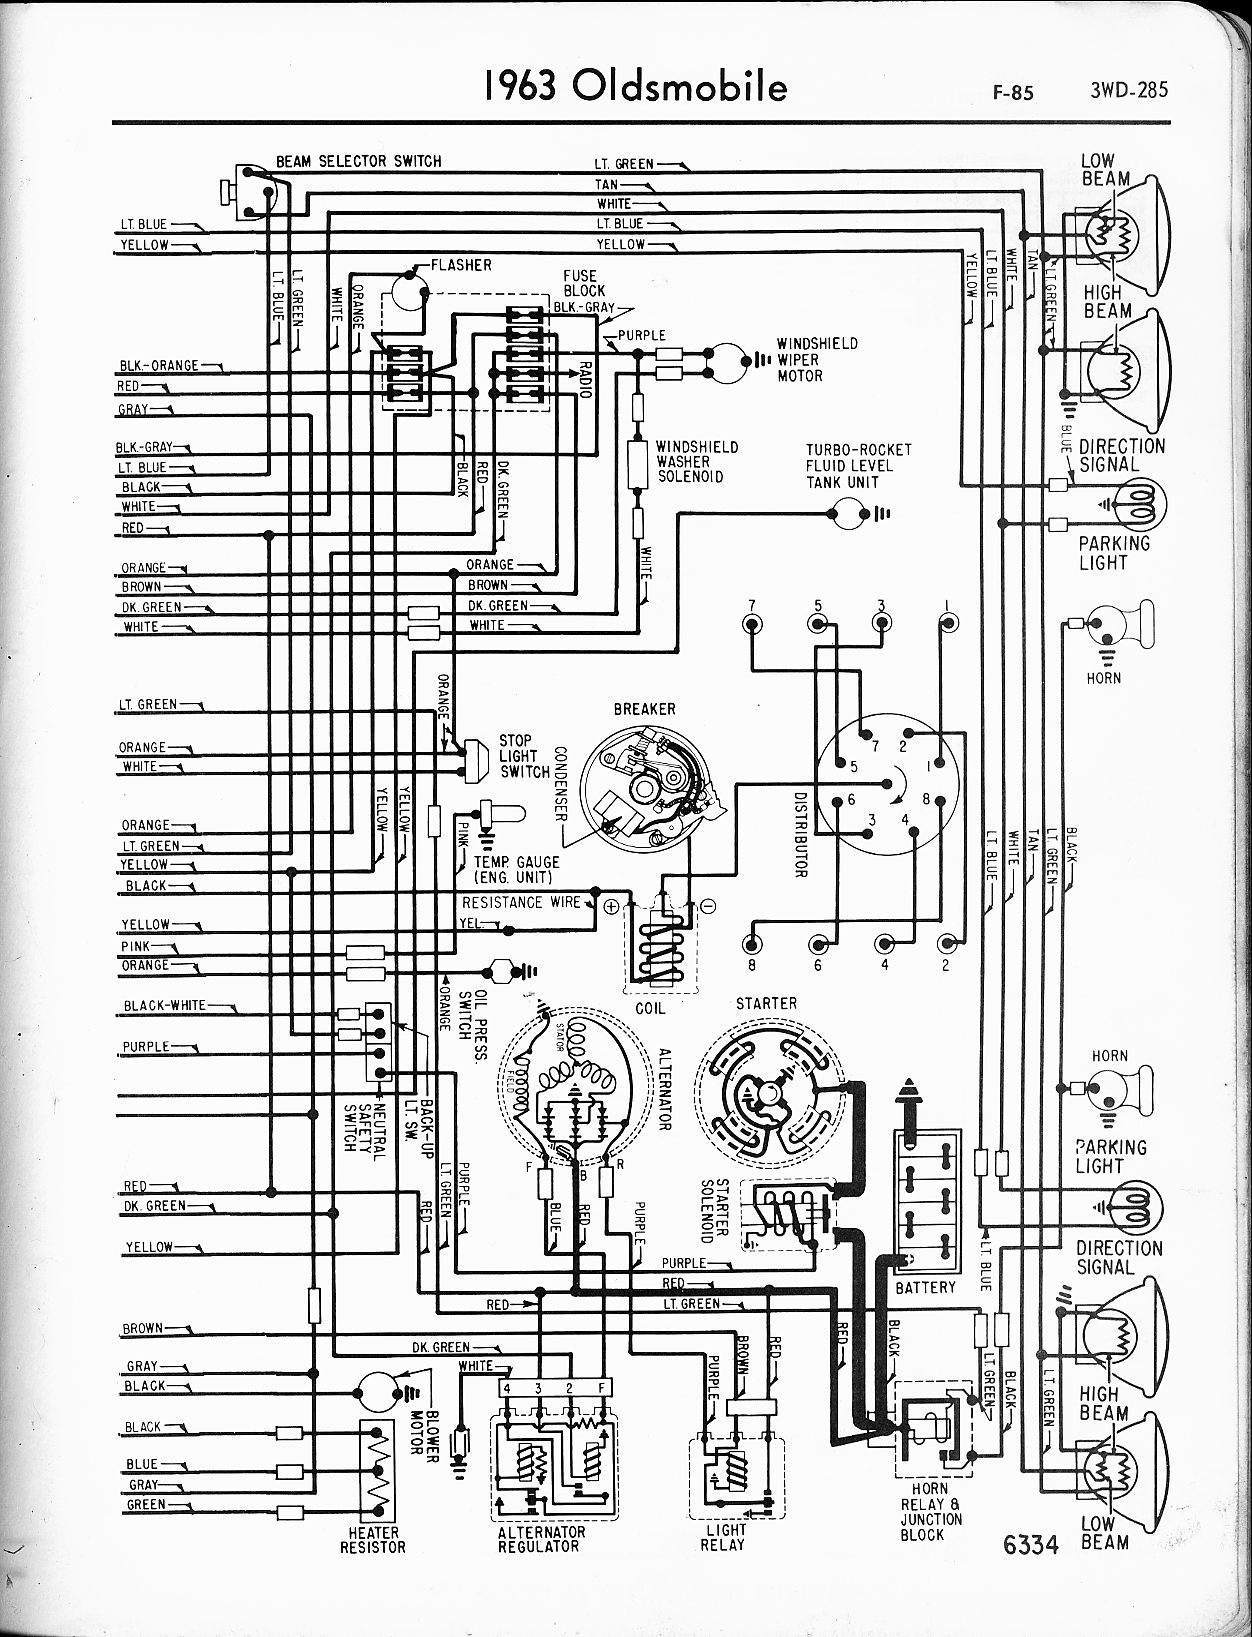 MWire5765 285 oldsmobile wiring diagrams the old car manual project 1998 oldsmobile intrigue radio wiring diagram at readyjetset.co